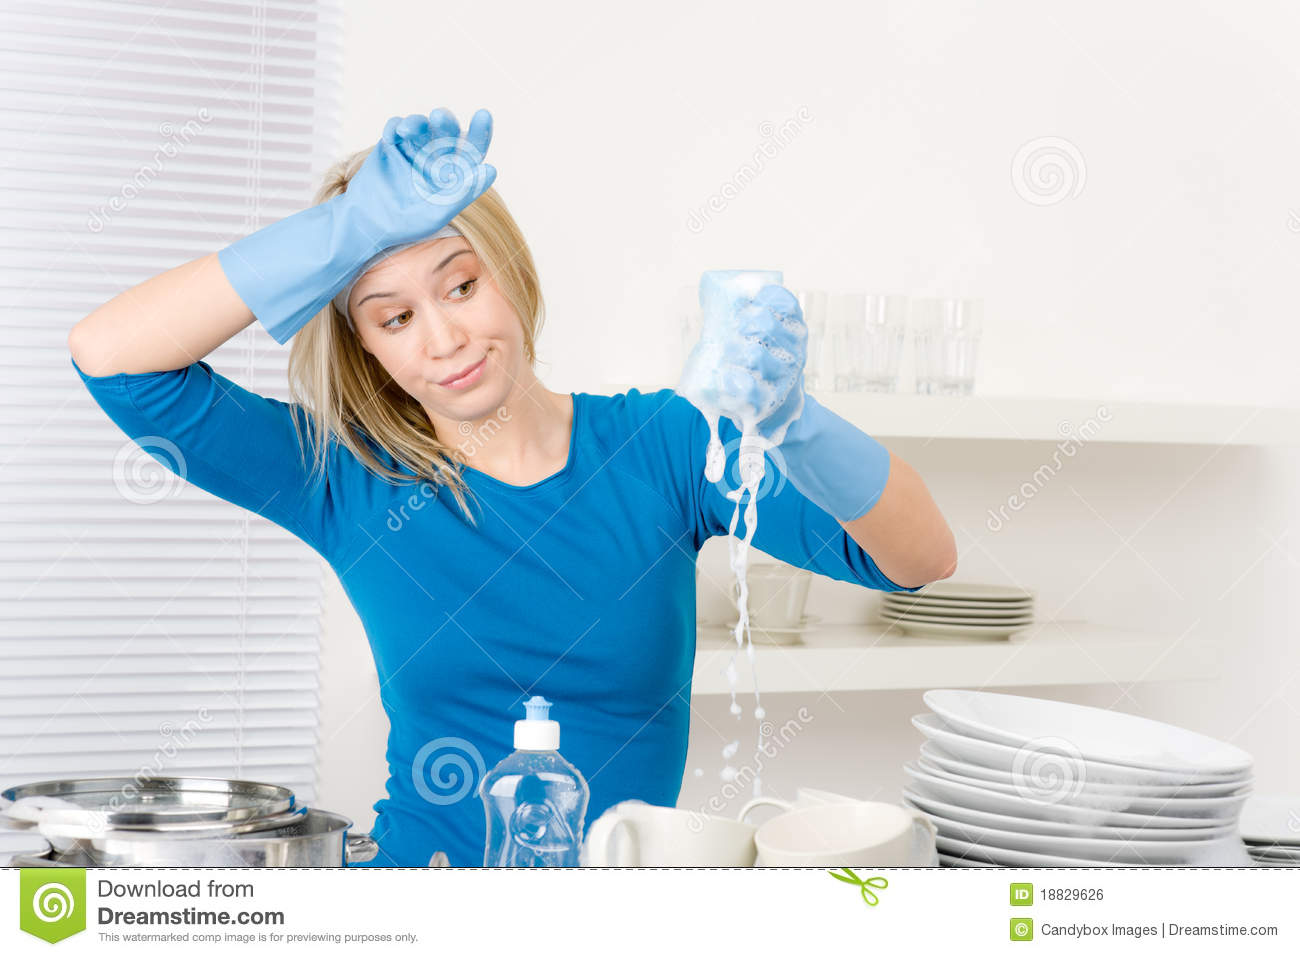 how to use less water when washing dishes